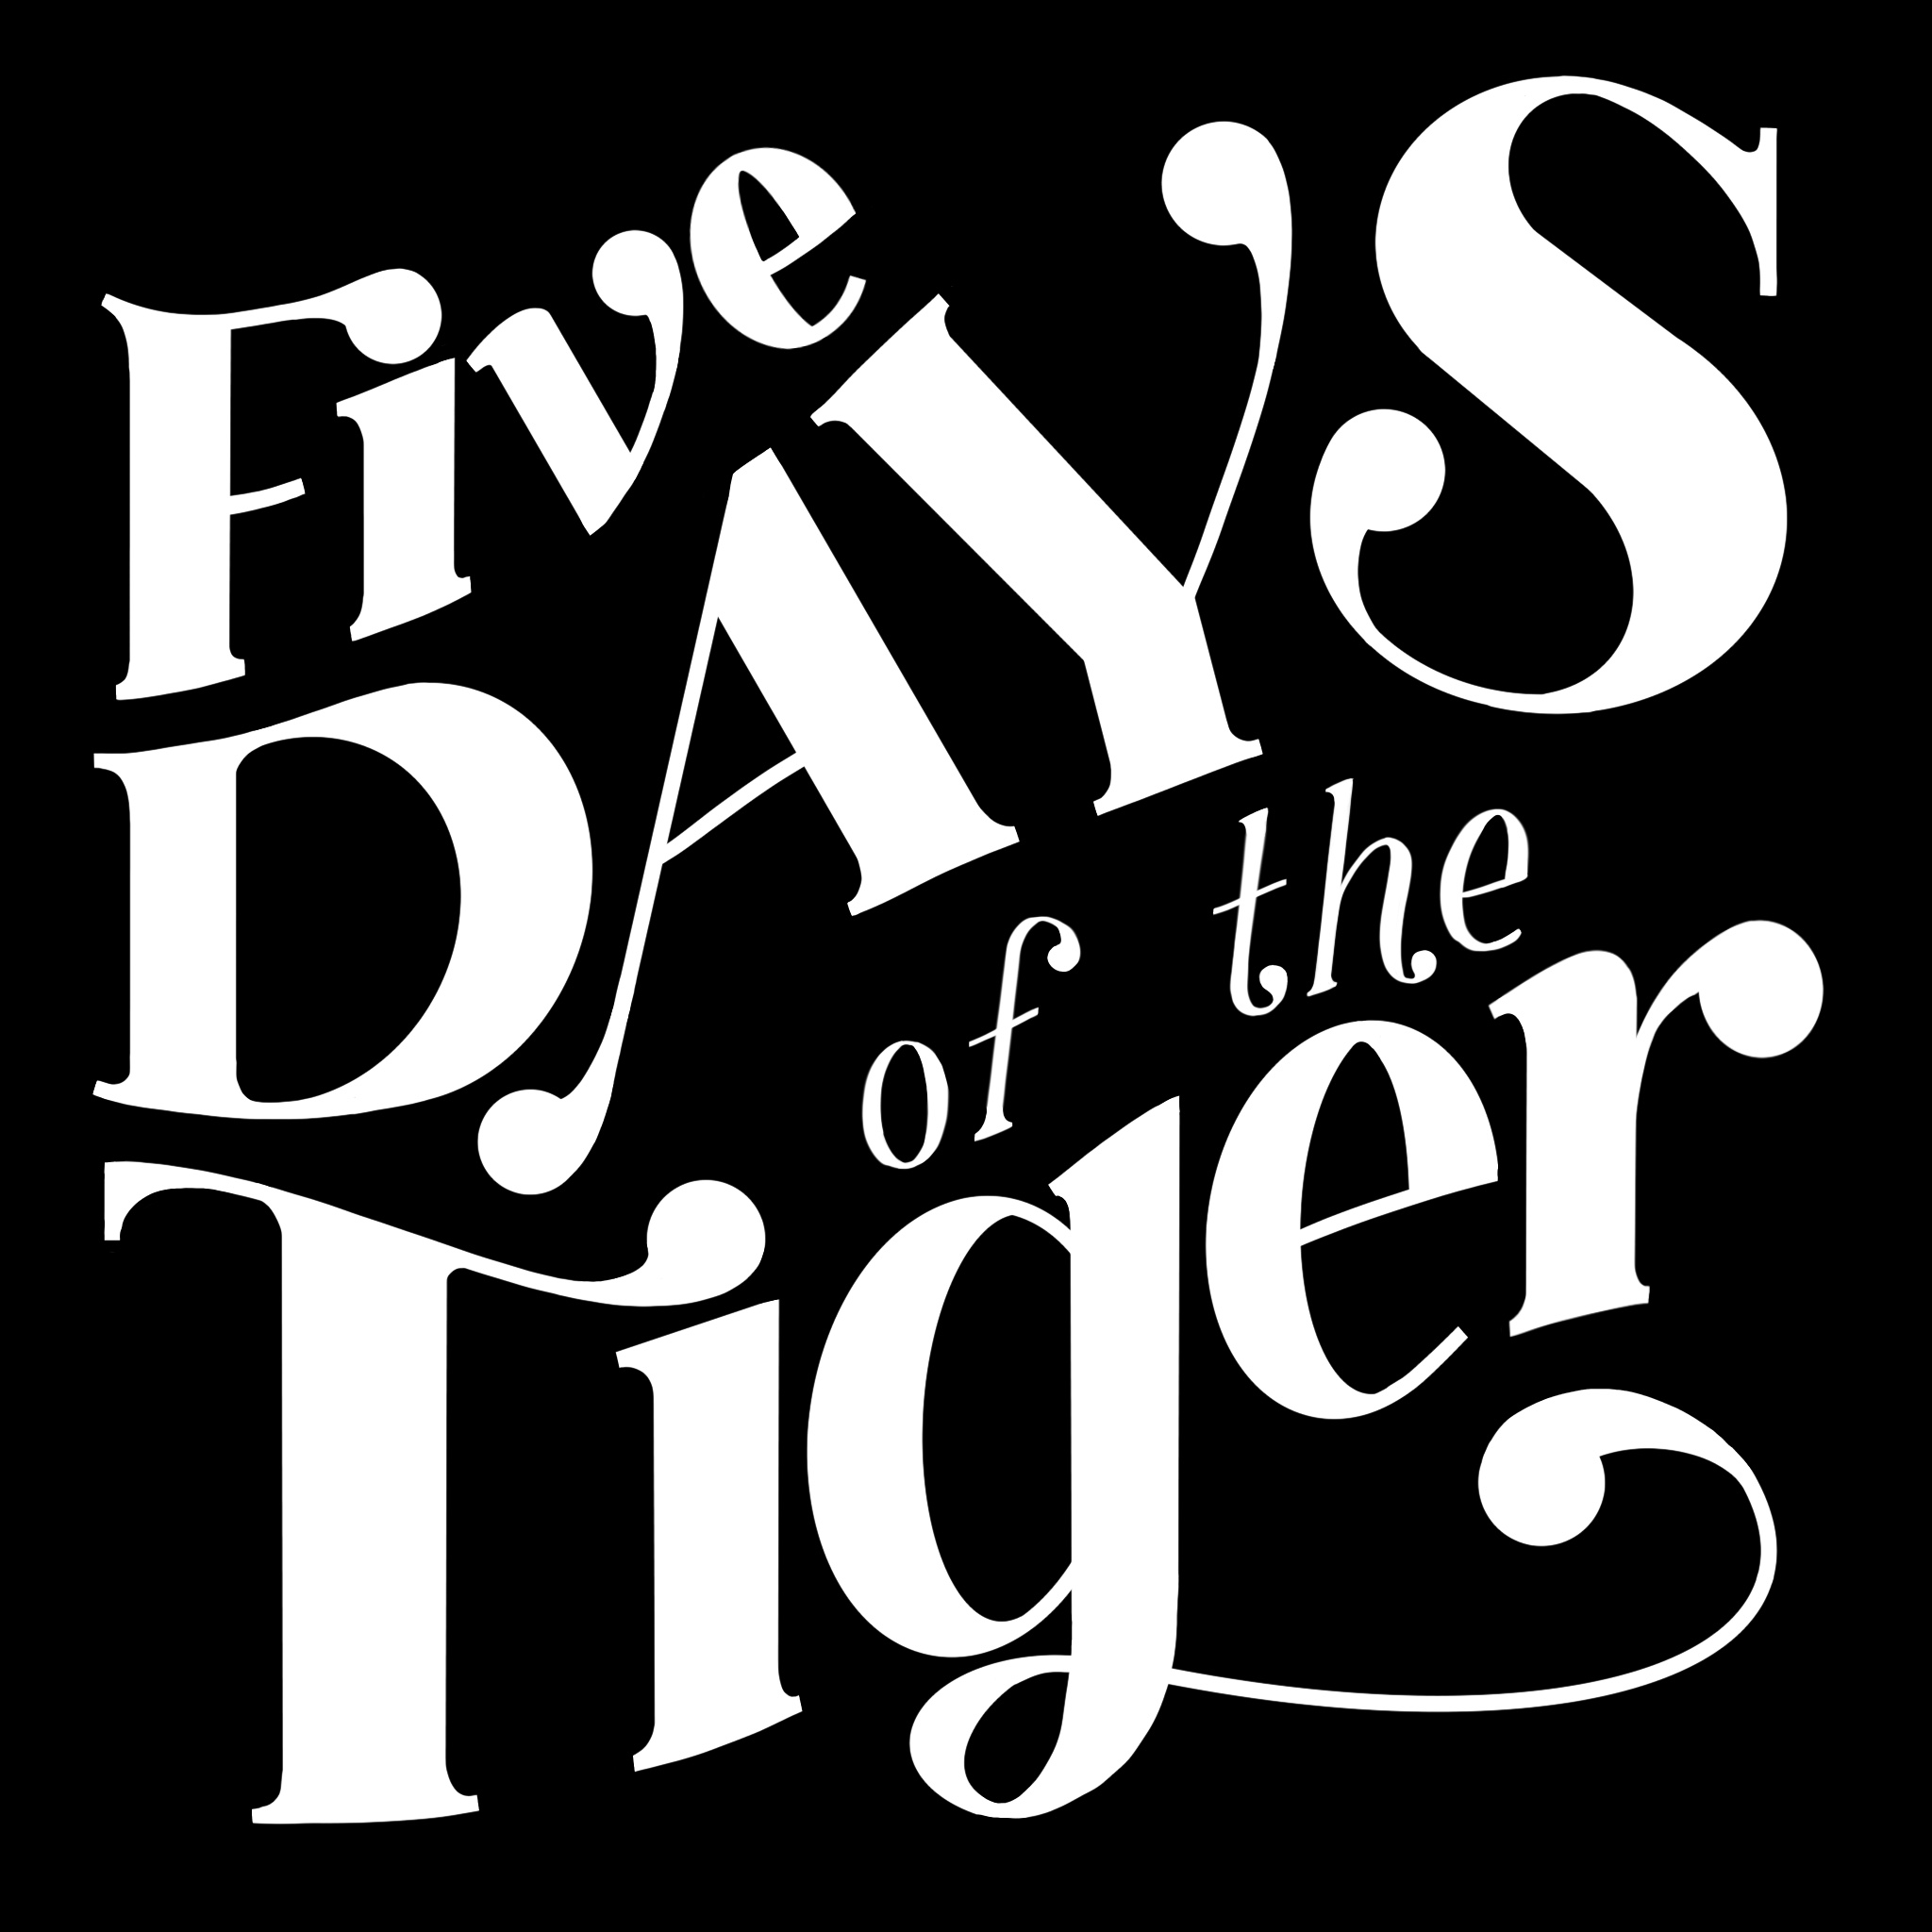 Five Days of the Tiger